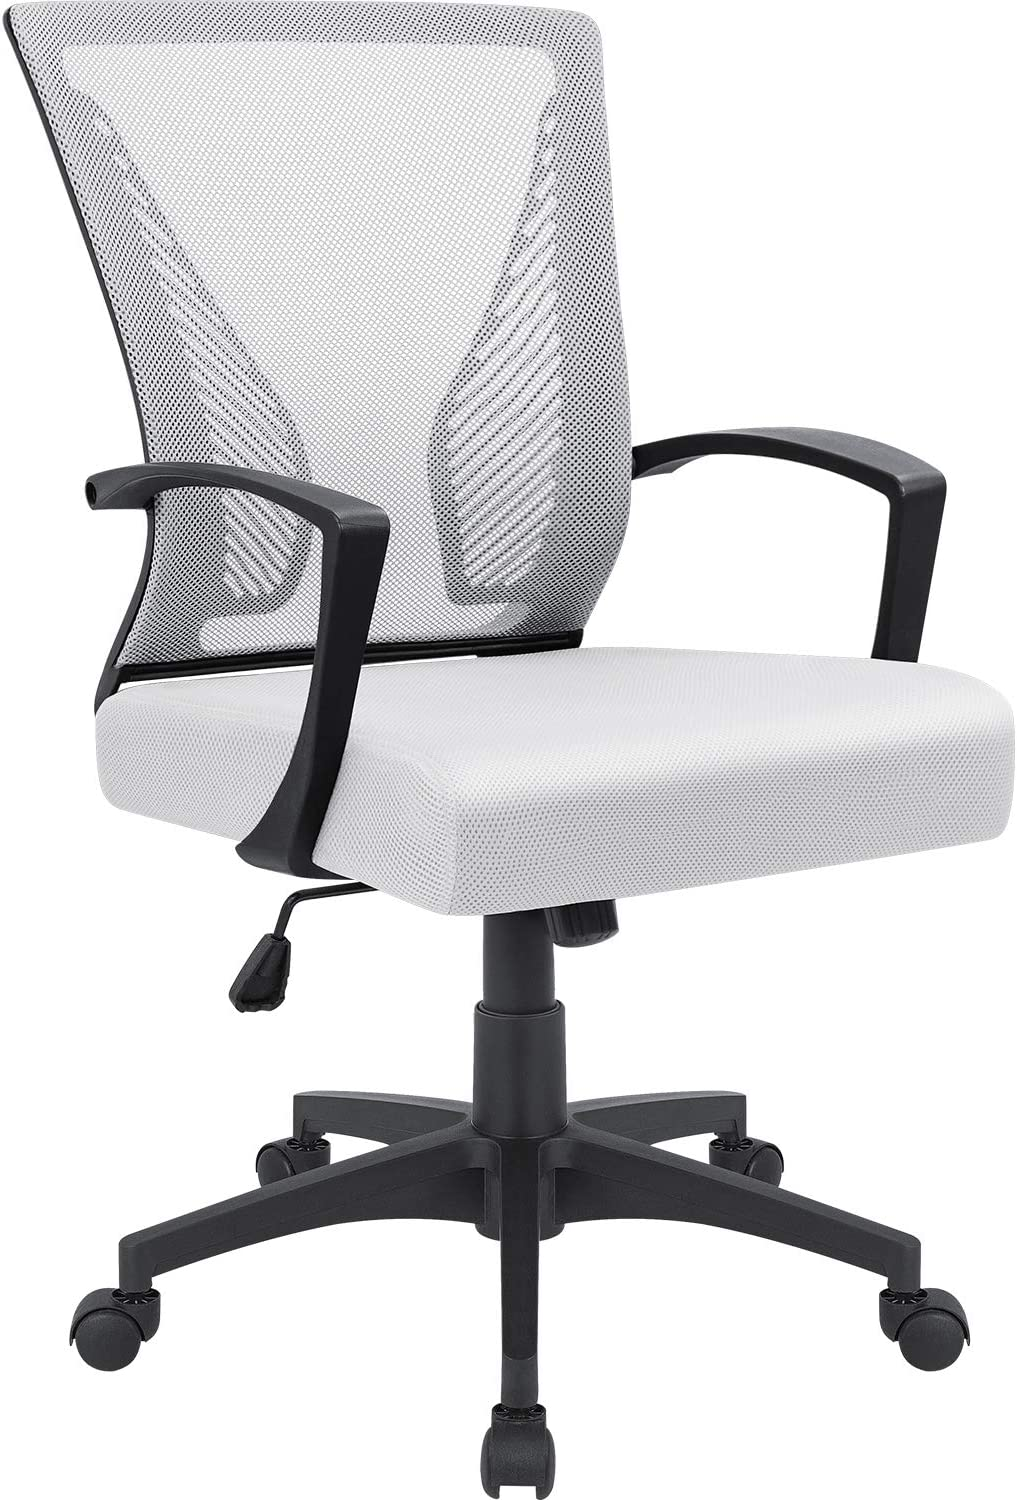 Furmax Office Chair Mid Back Swivel Lumbar Support Desk Chair, Computer Ergonomic Mesh Chair with Armrest (White)